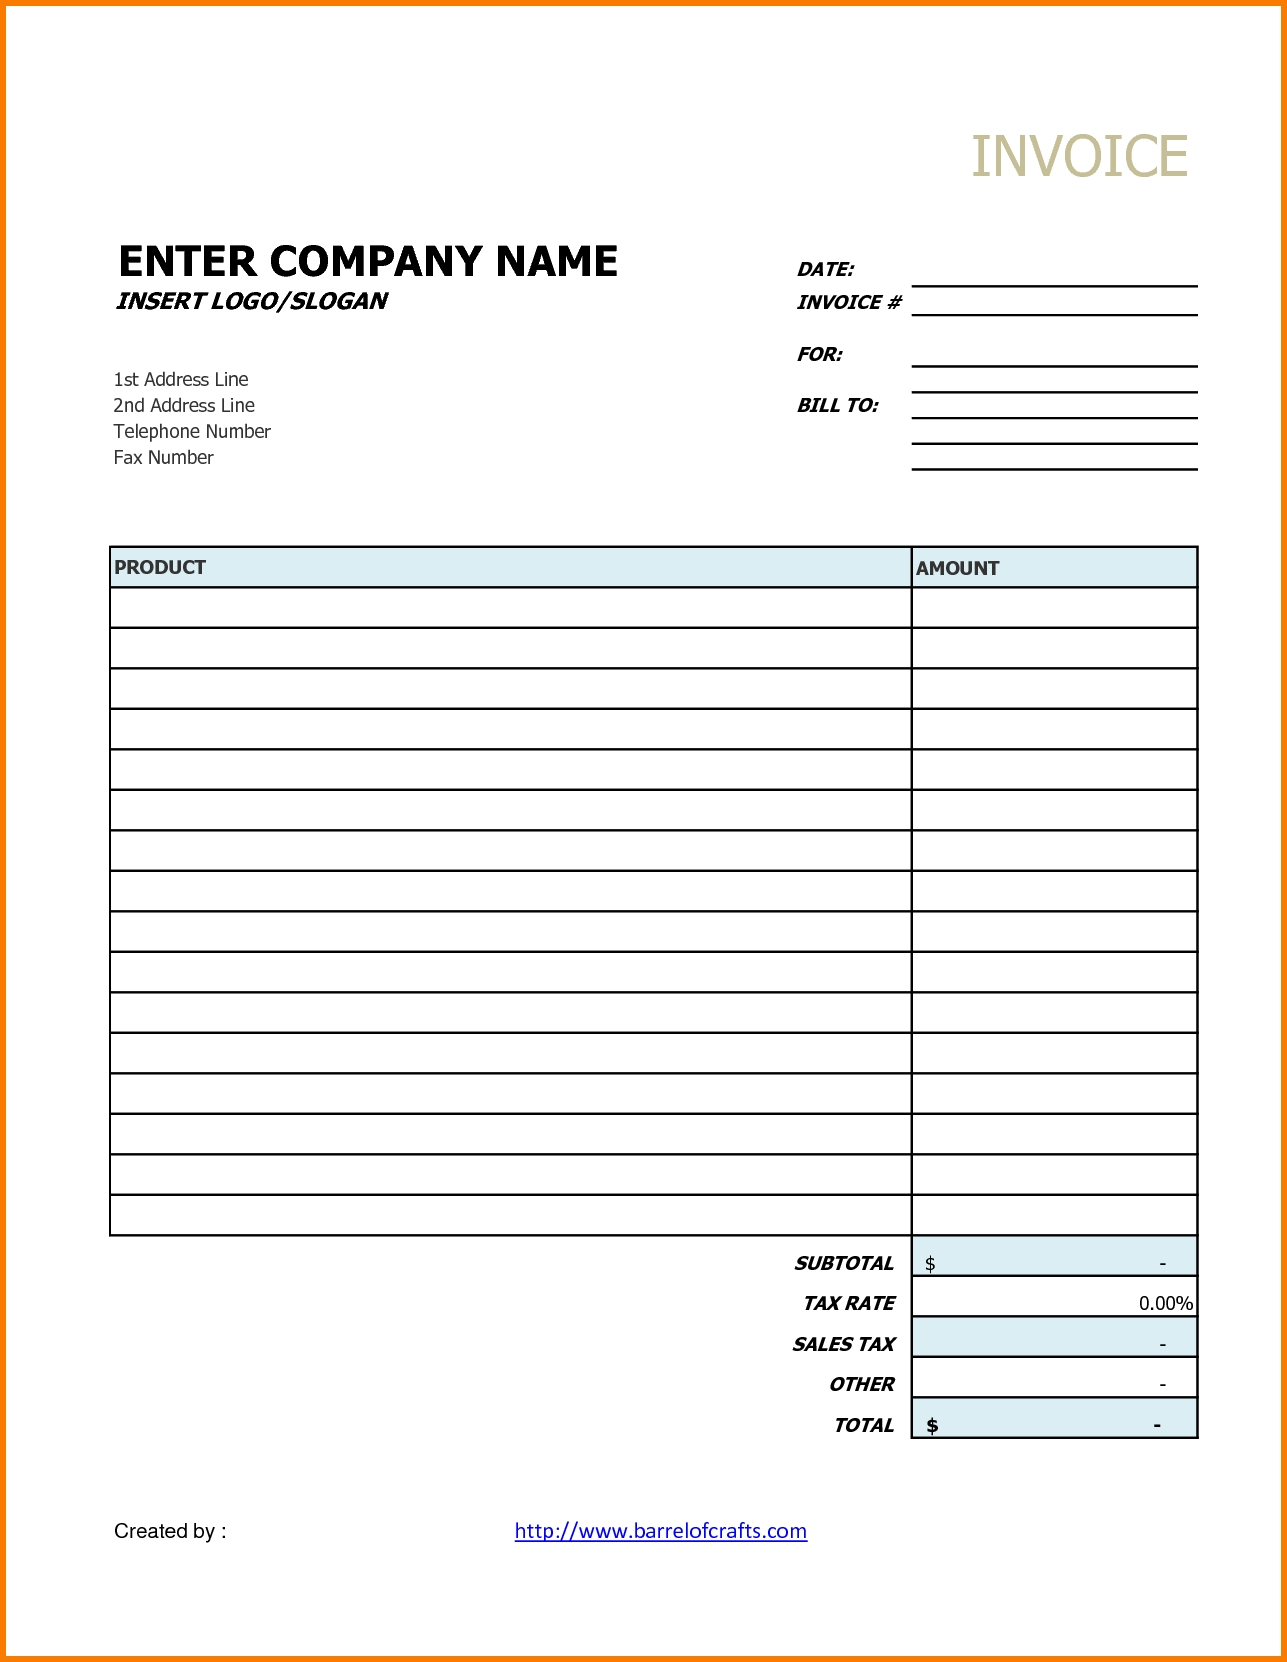 invoice template google docs java design templates for simple invoice template google docs